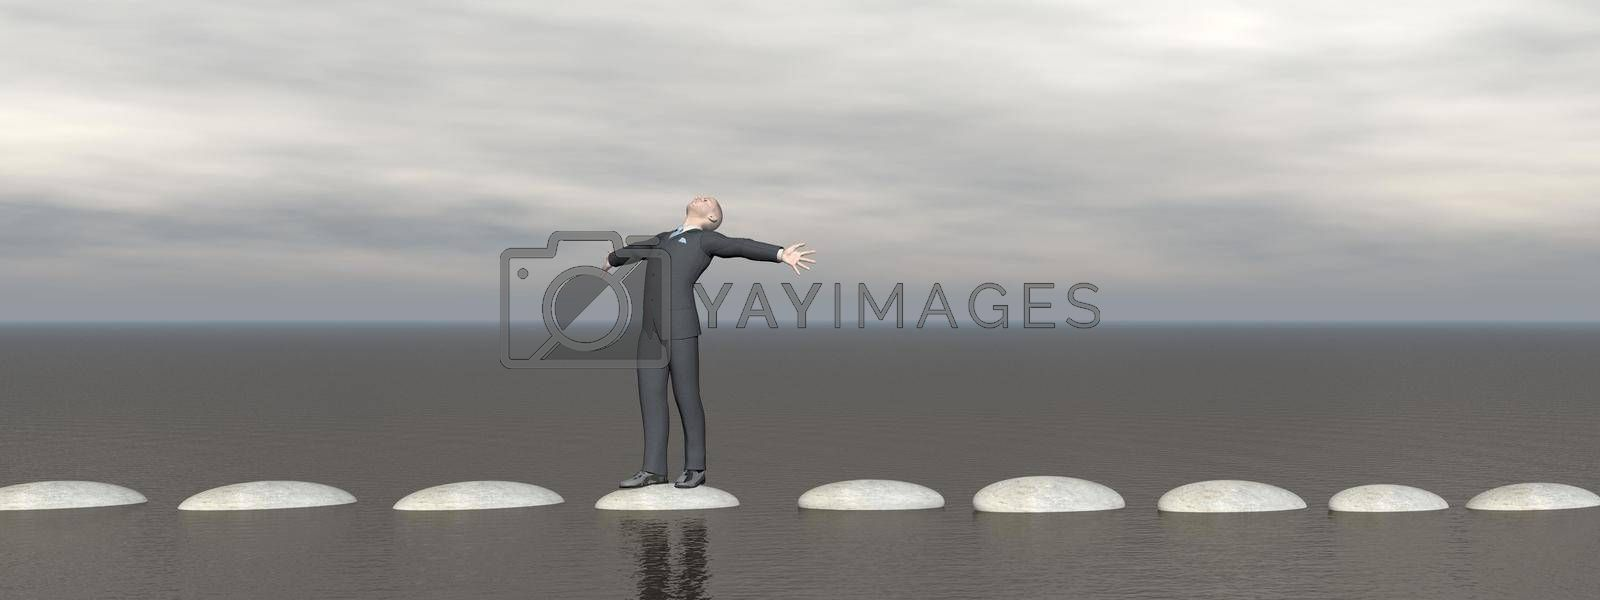 businessman and sky that runs on steps - 3D rendering